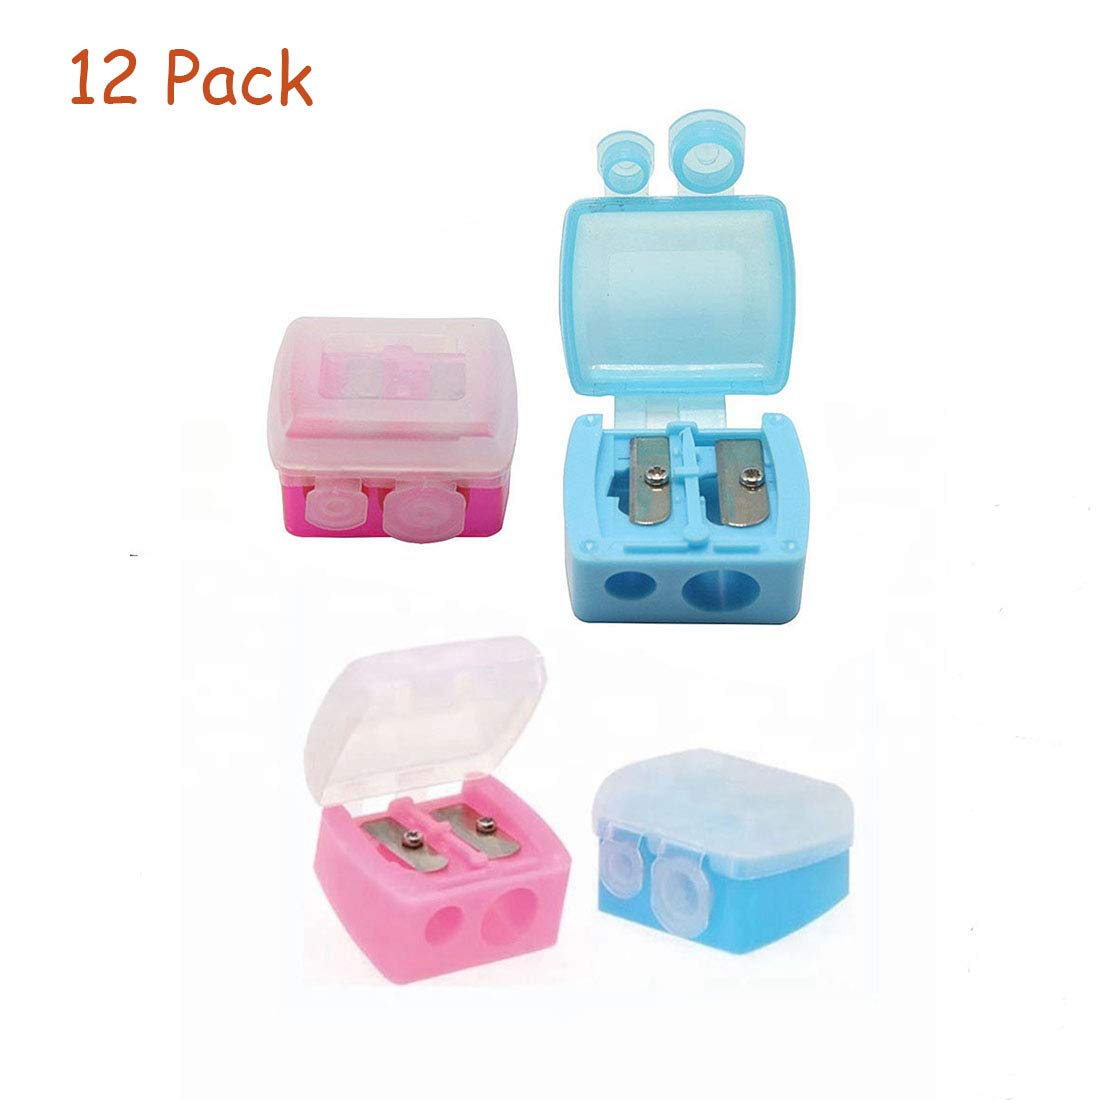 12Pcs Dual Holes Makeup Pencil Sharpeners with Matte Cover for Eyebrow Pencil Cutter